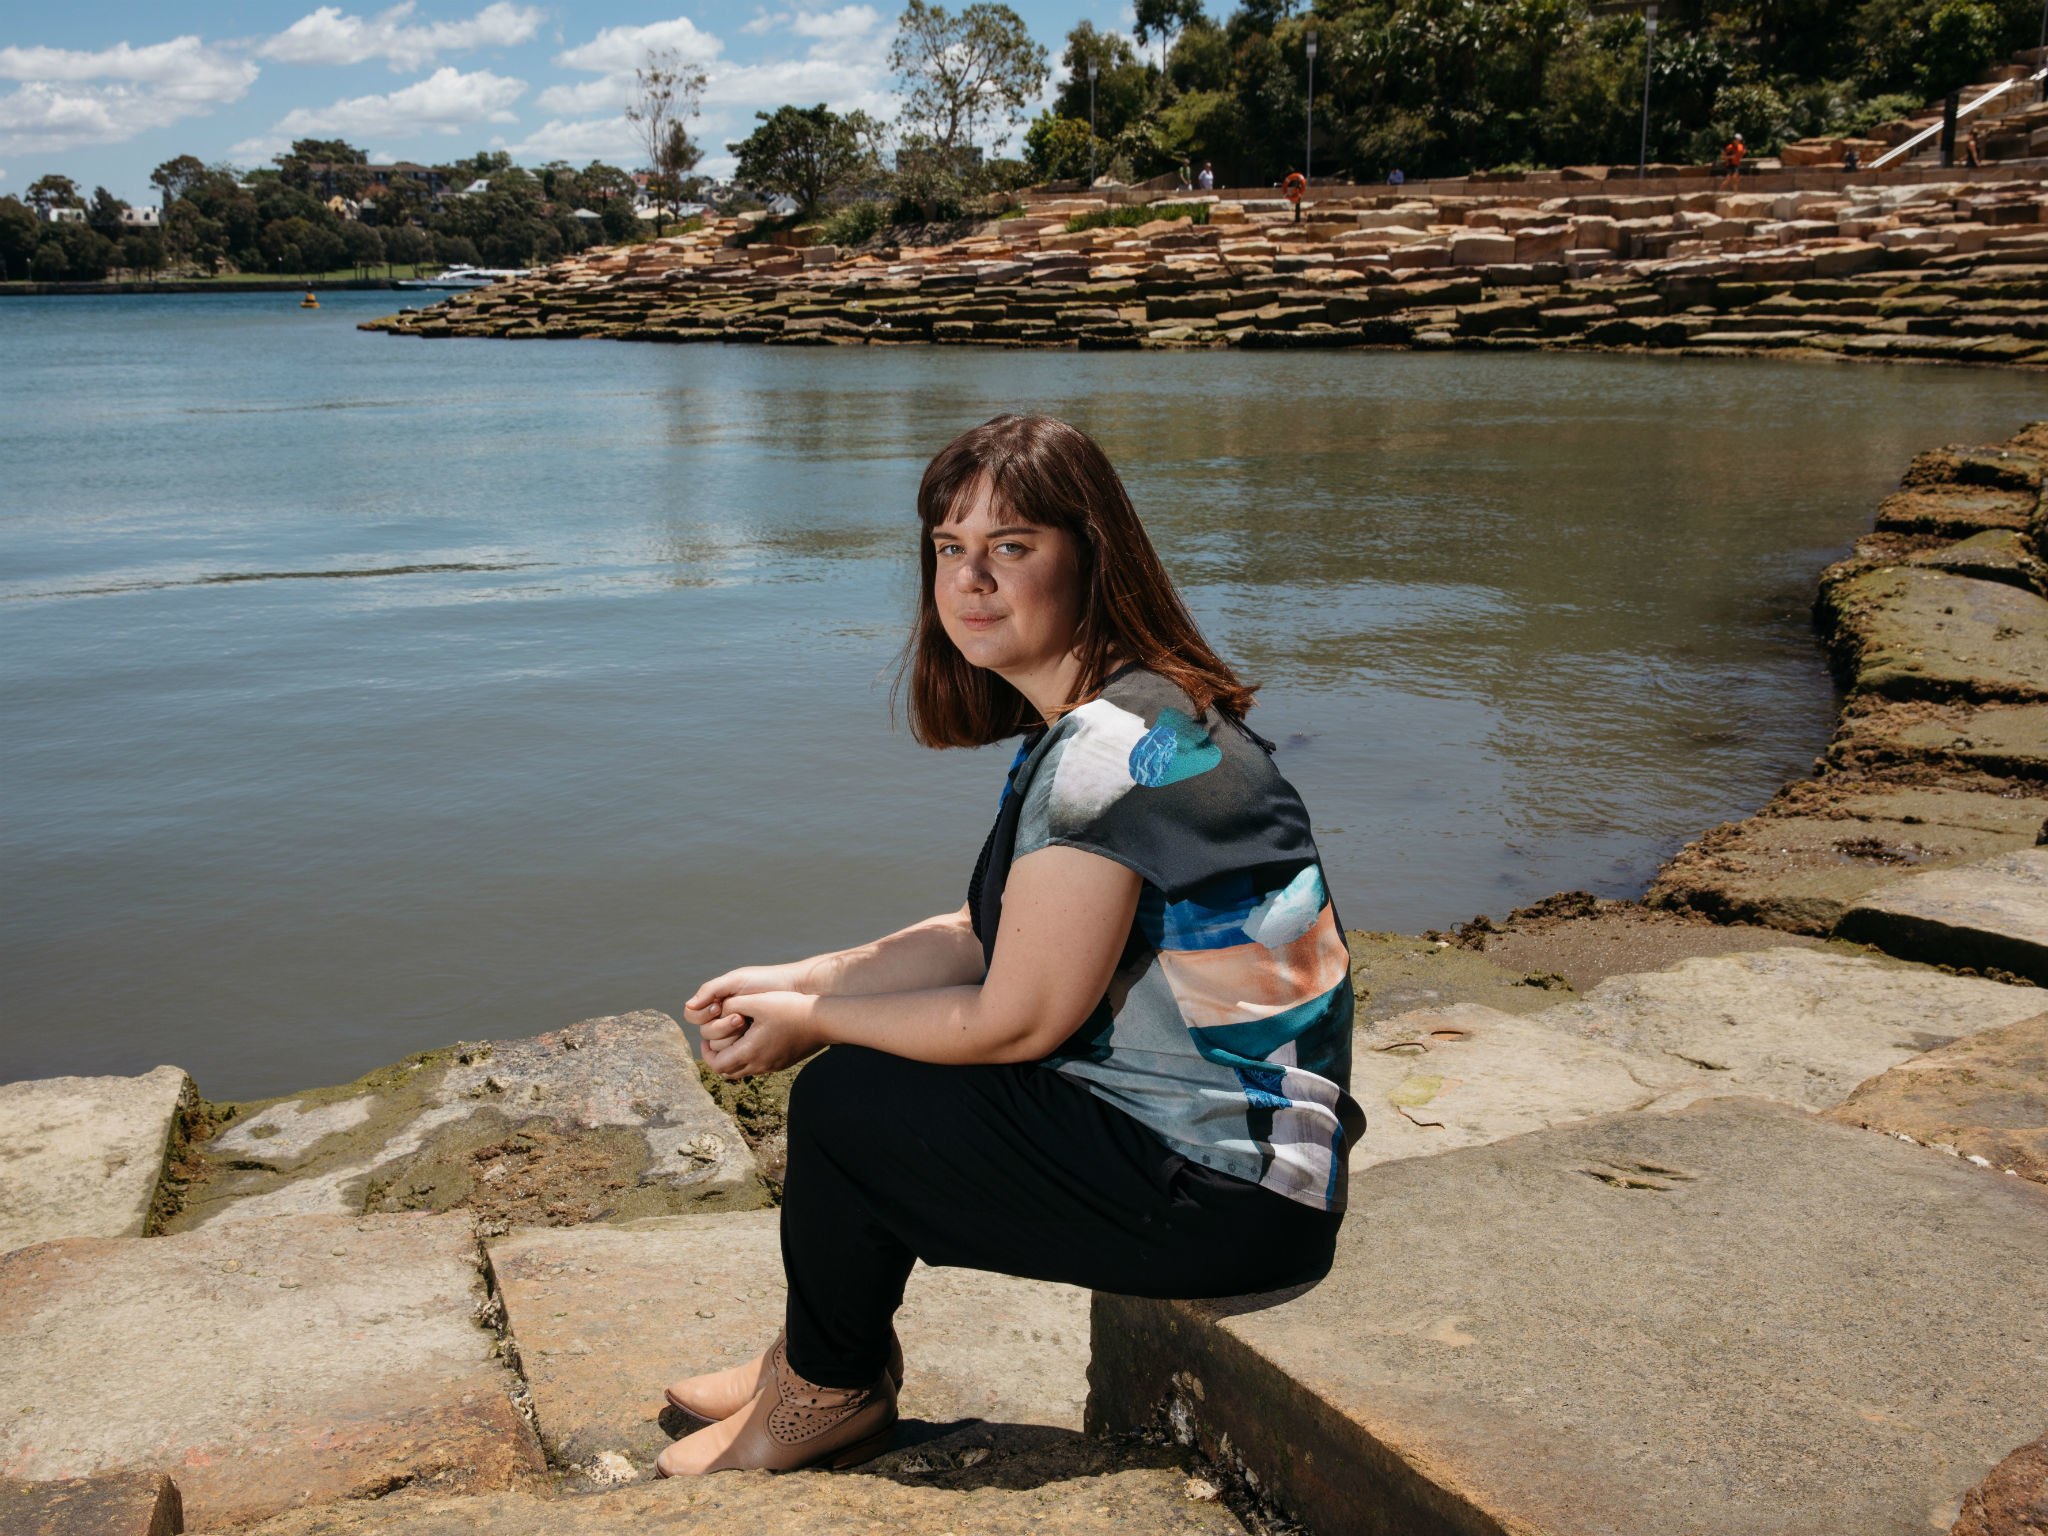 One of the most profound stories to be told at Sydney Festival will be of Barangaroo, the woman